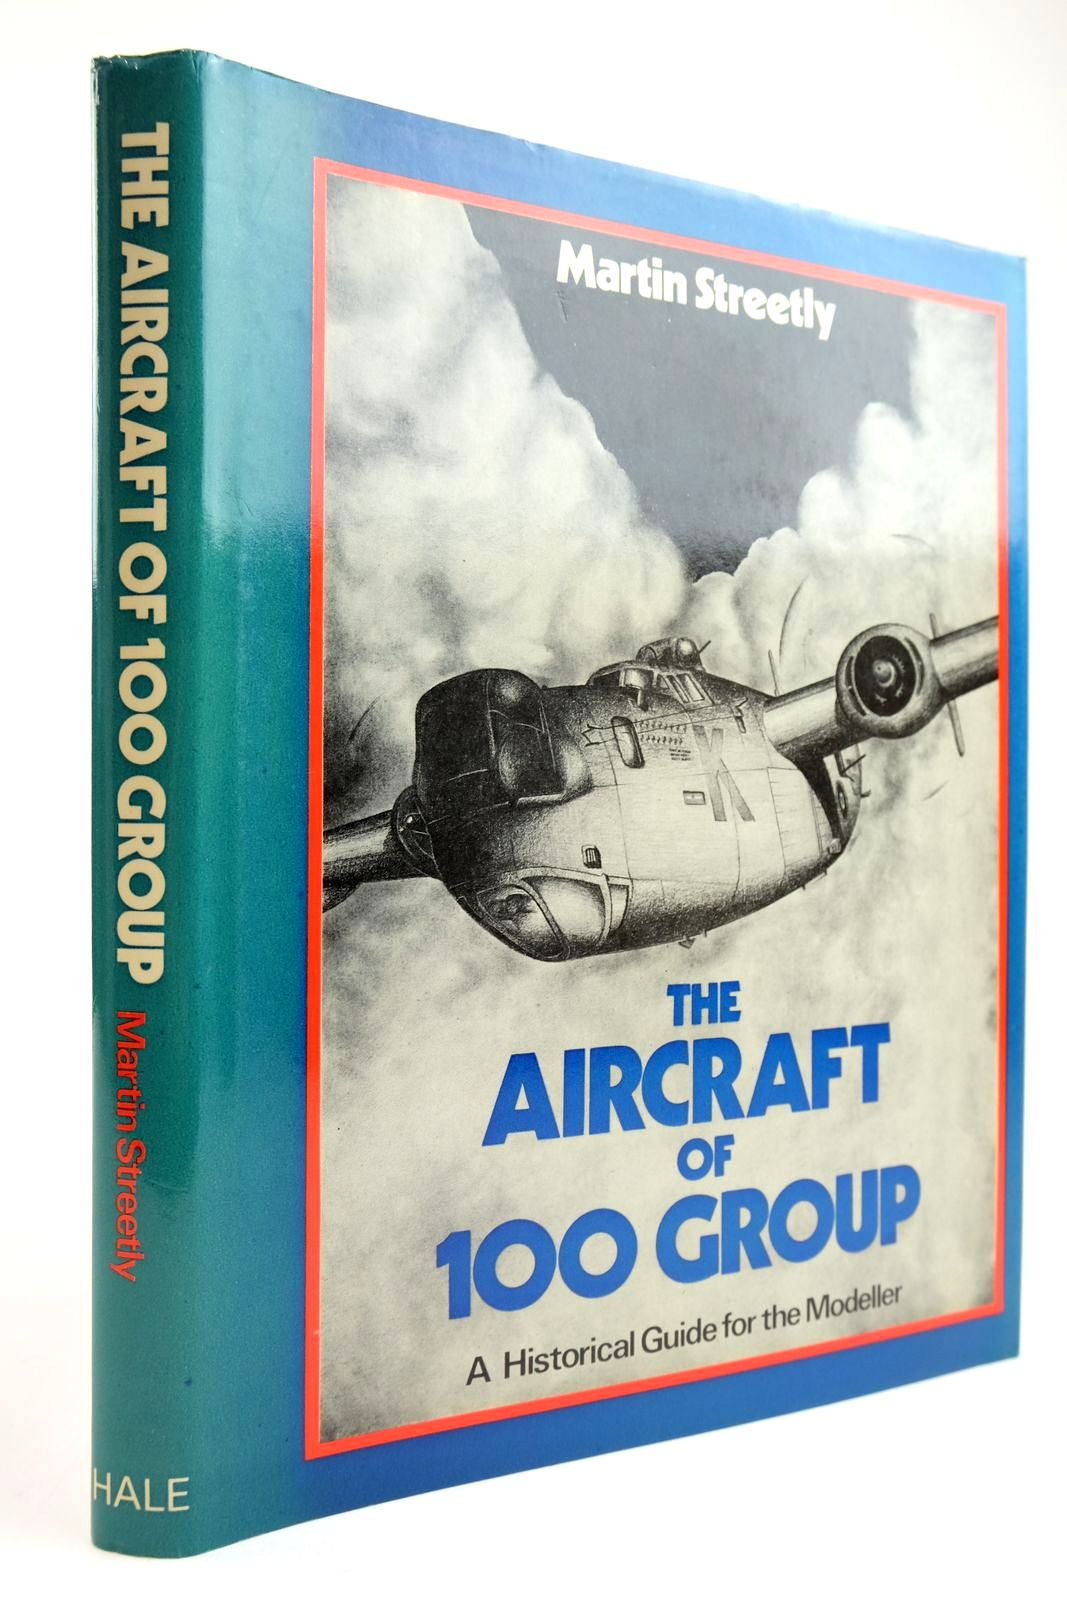 Photo of THE AIRCRAFT OF 100 GROUP A HISTORICAL GUIDE FOR THE MODELLER written by Streetly, Martin published by Robert Hale (STOCK CODE: 2133816)  for sale by Stella & Rose's Books